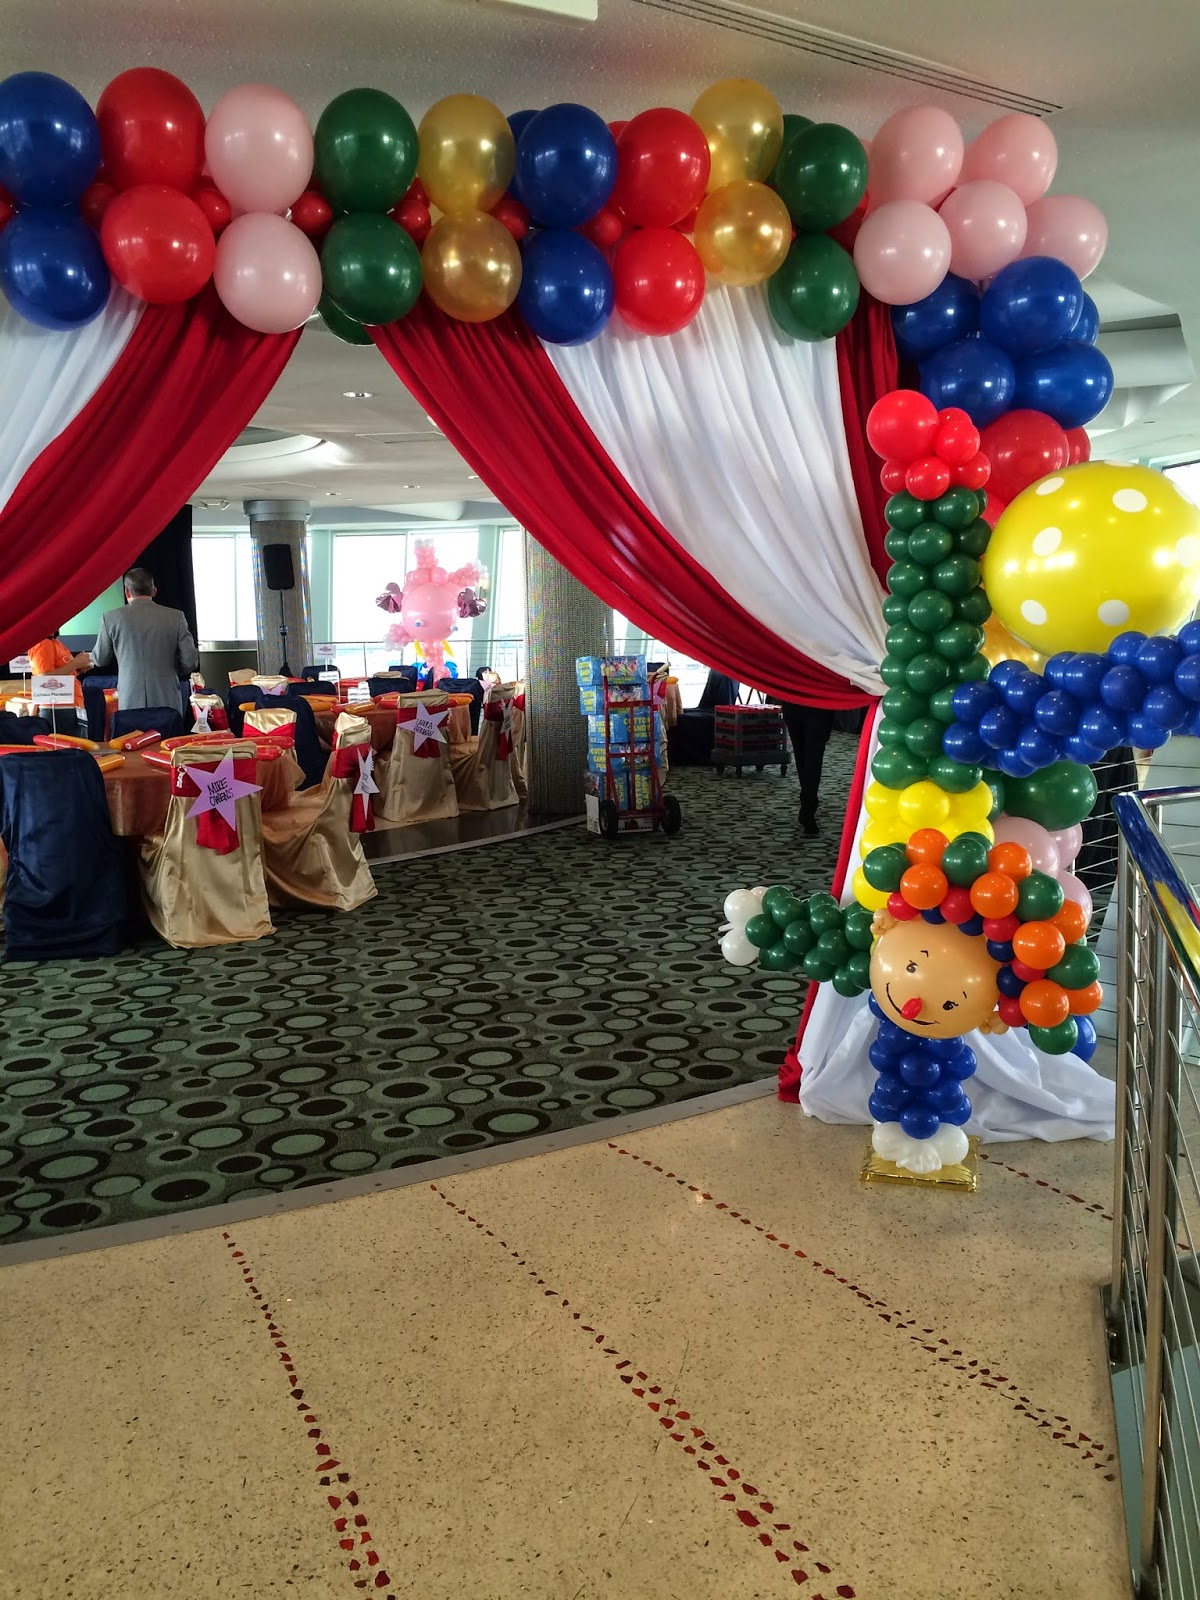 Circus party entrance decoration with draping and clown